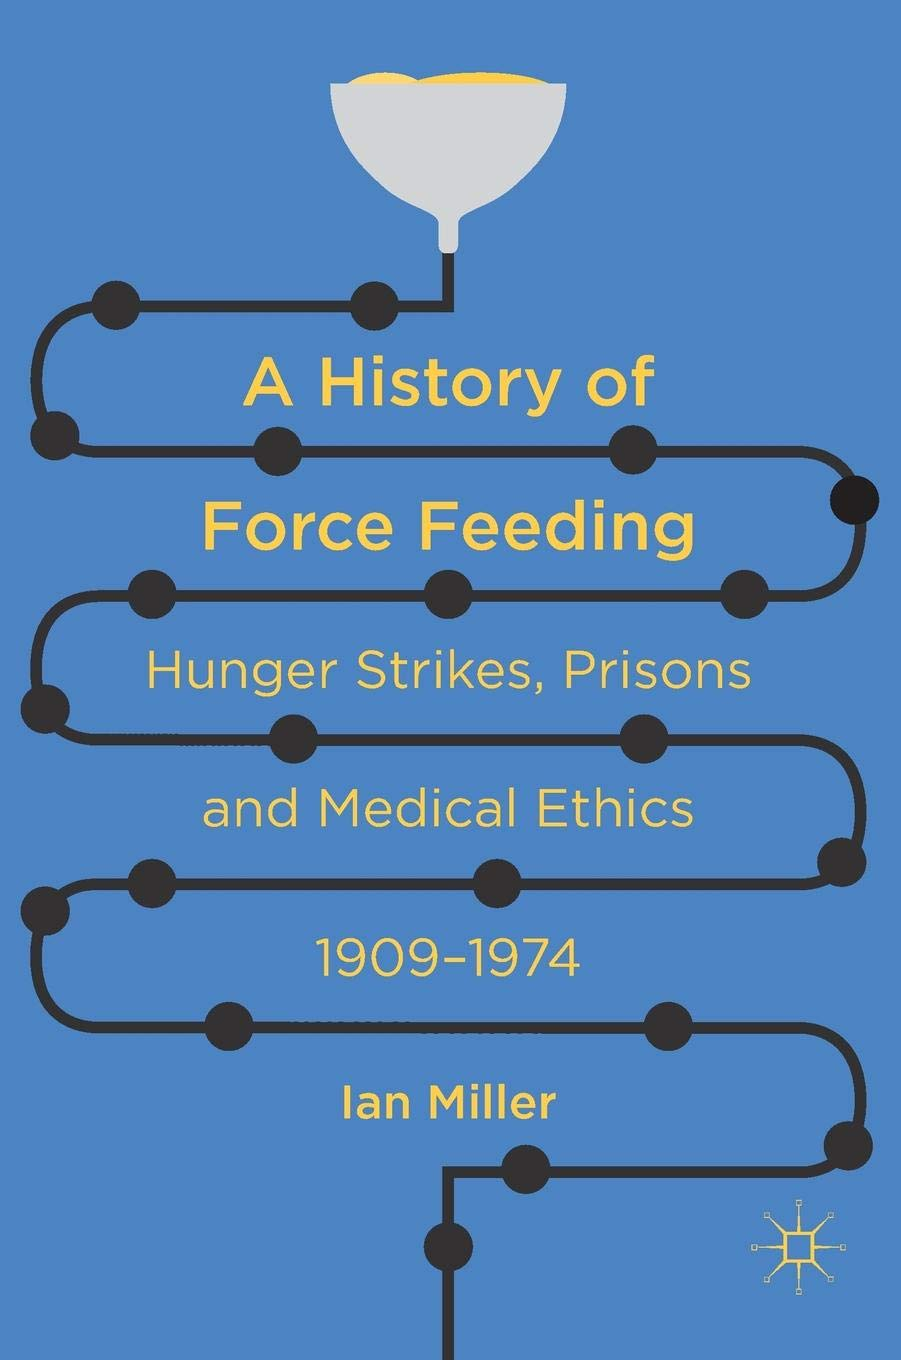 A History of Force Feeding: Hunger Strikes, Prisons and Medical Ethics, 1909–1974